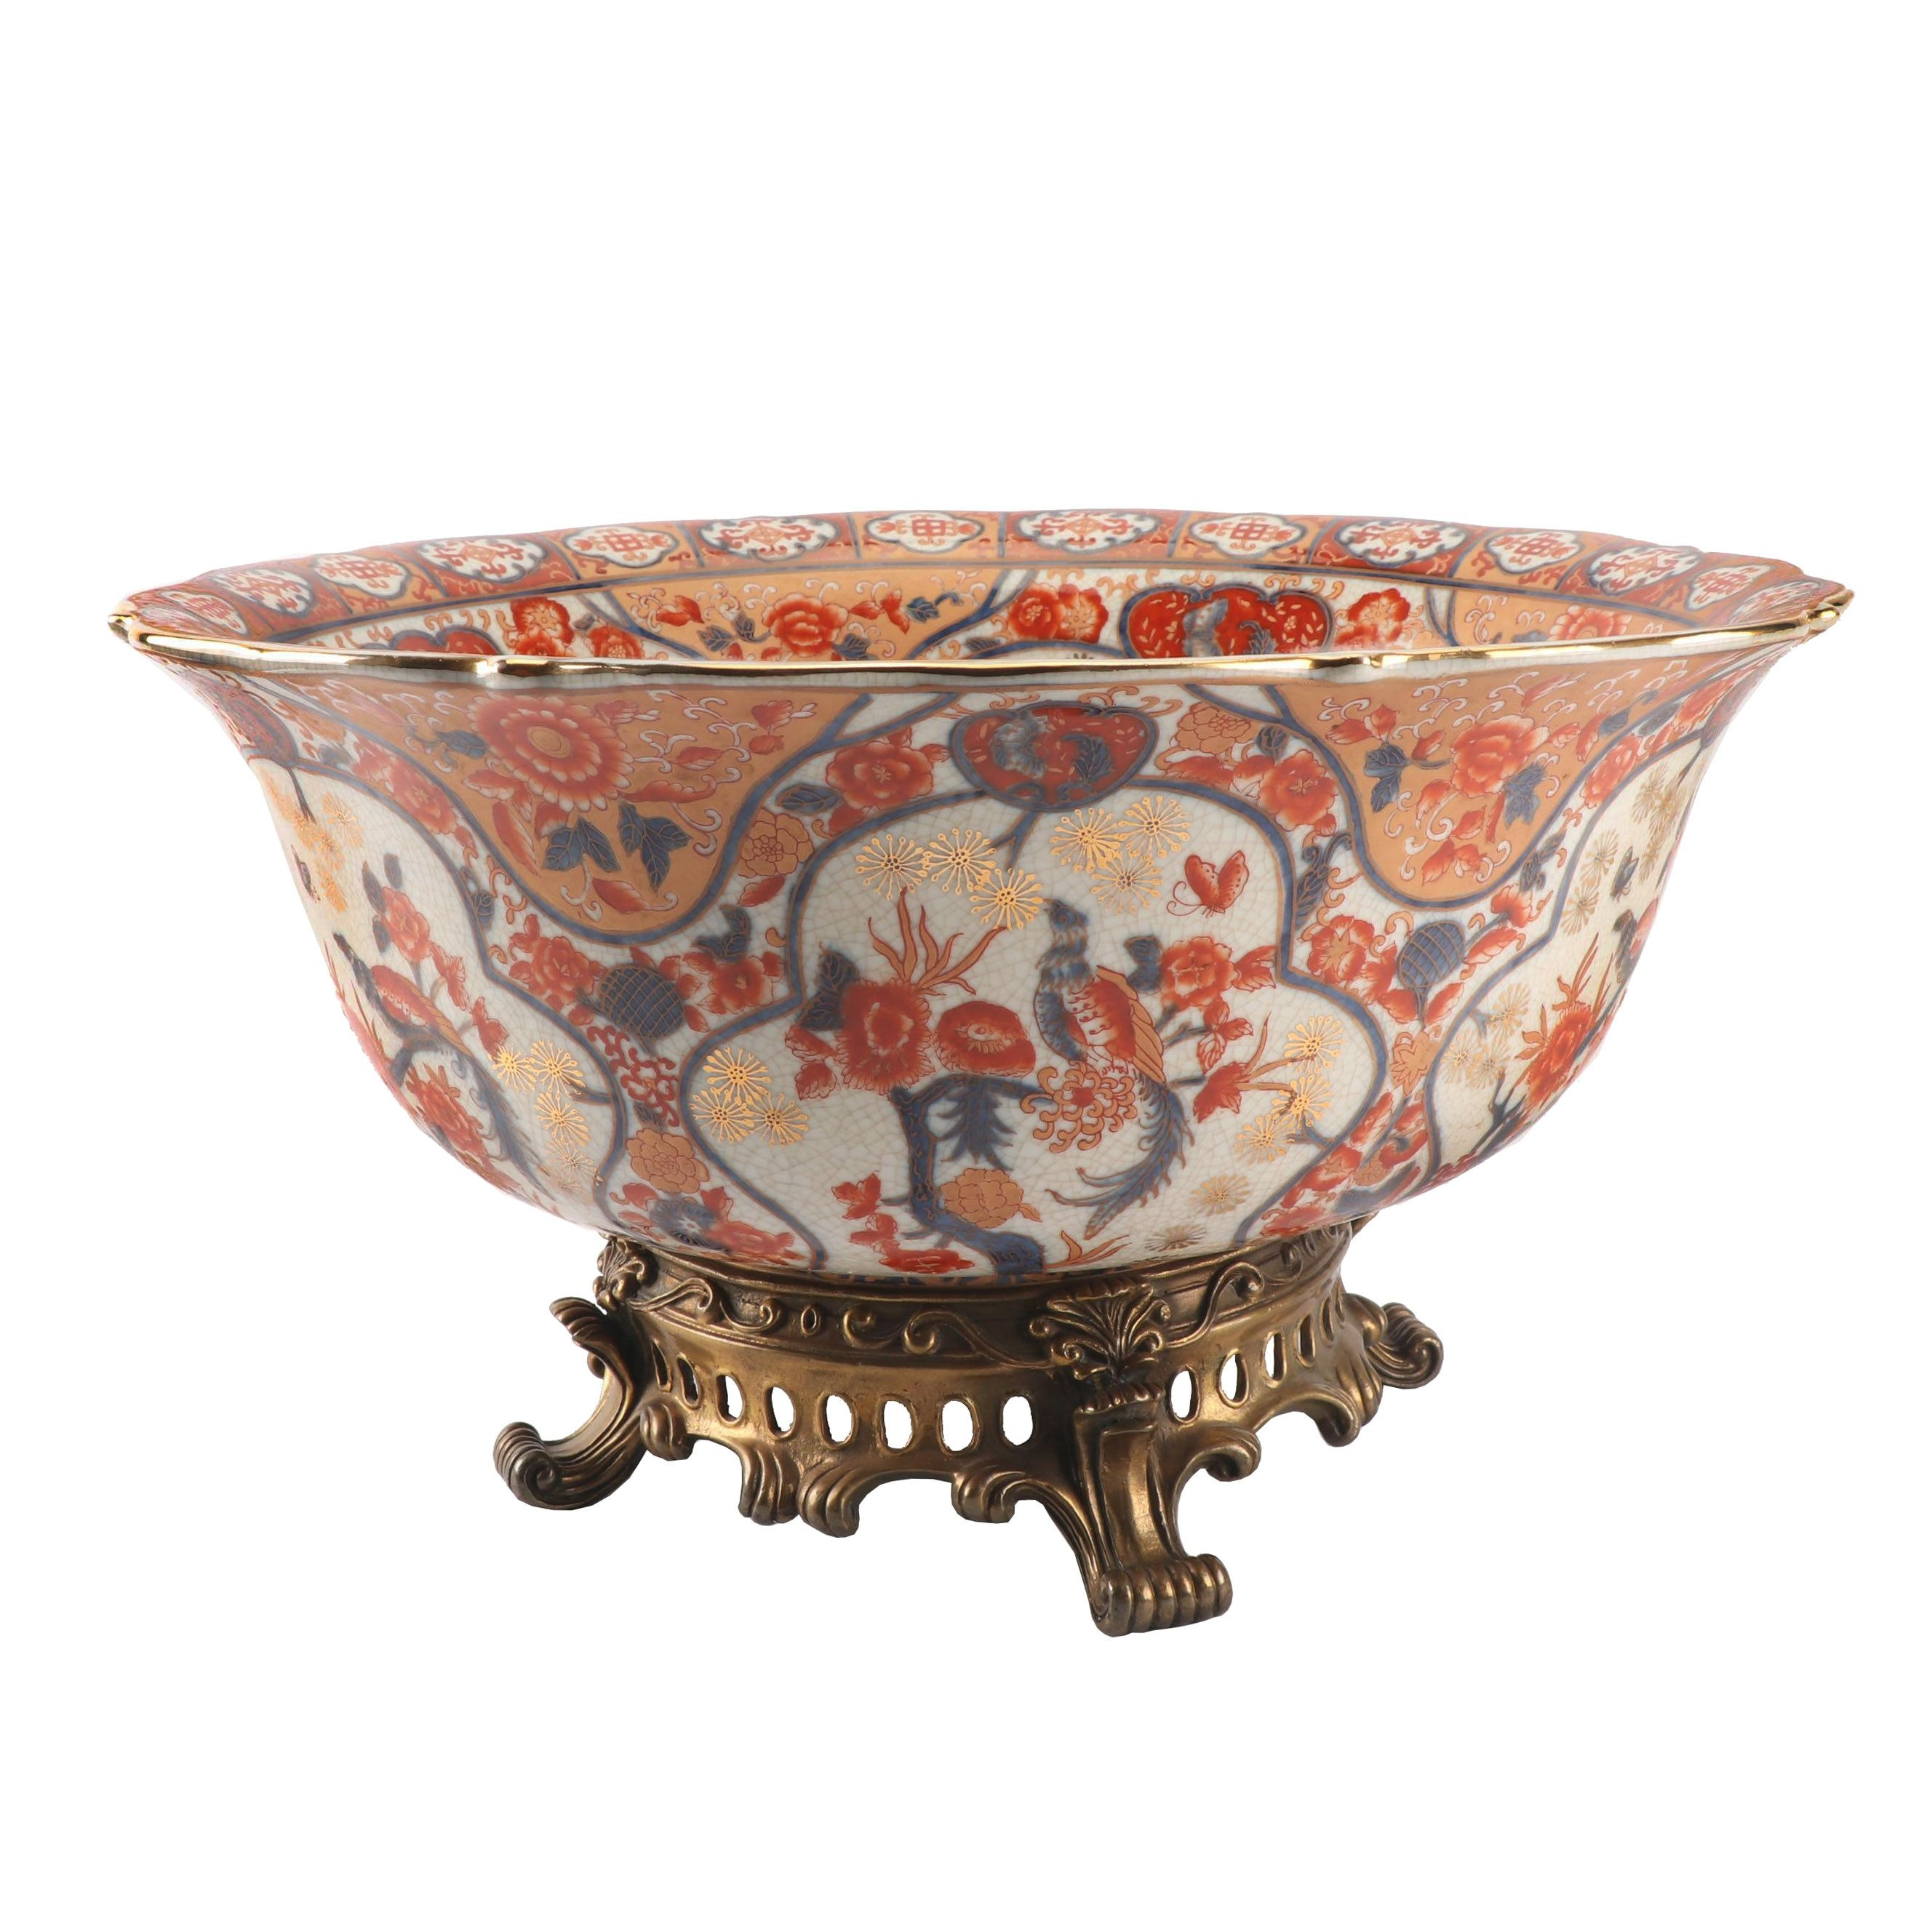 Castillian Chinese Imari Porcelain Bowl with Metal Footed Base